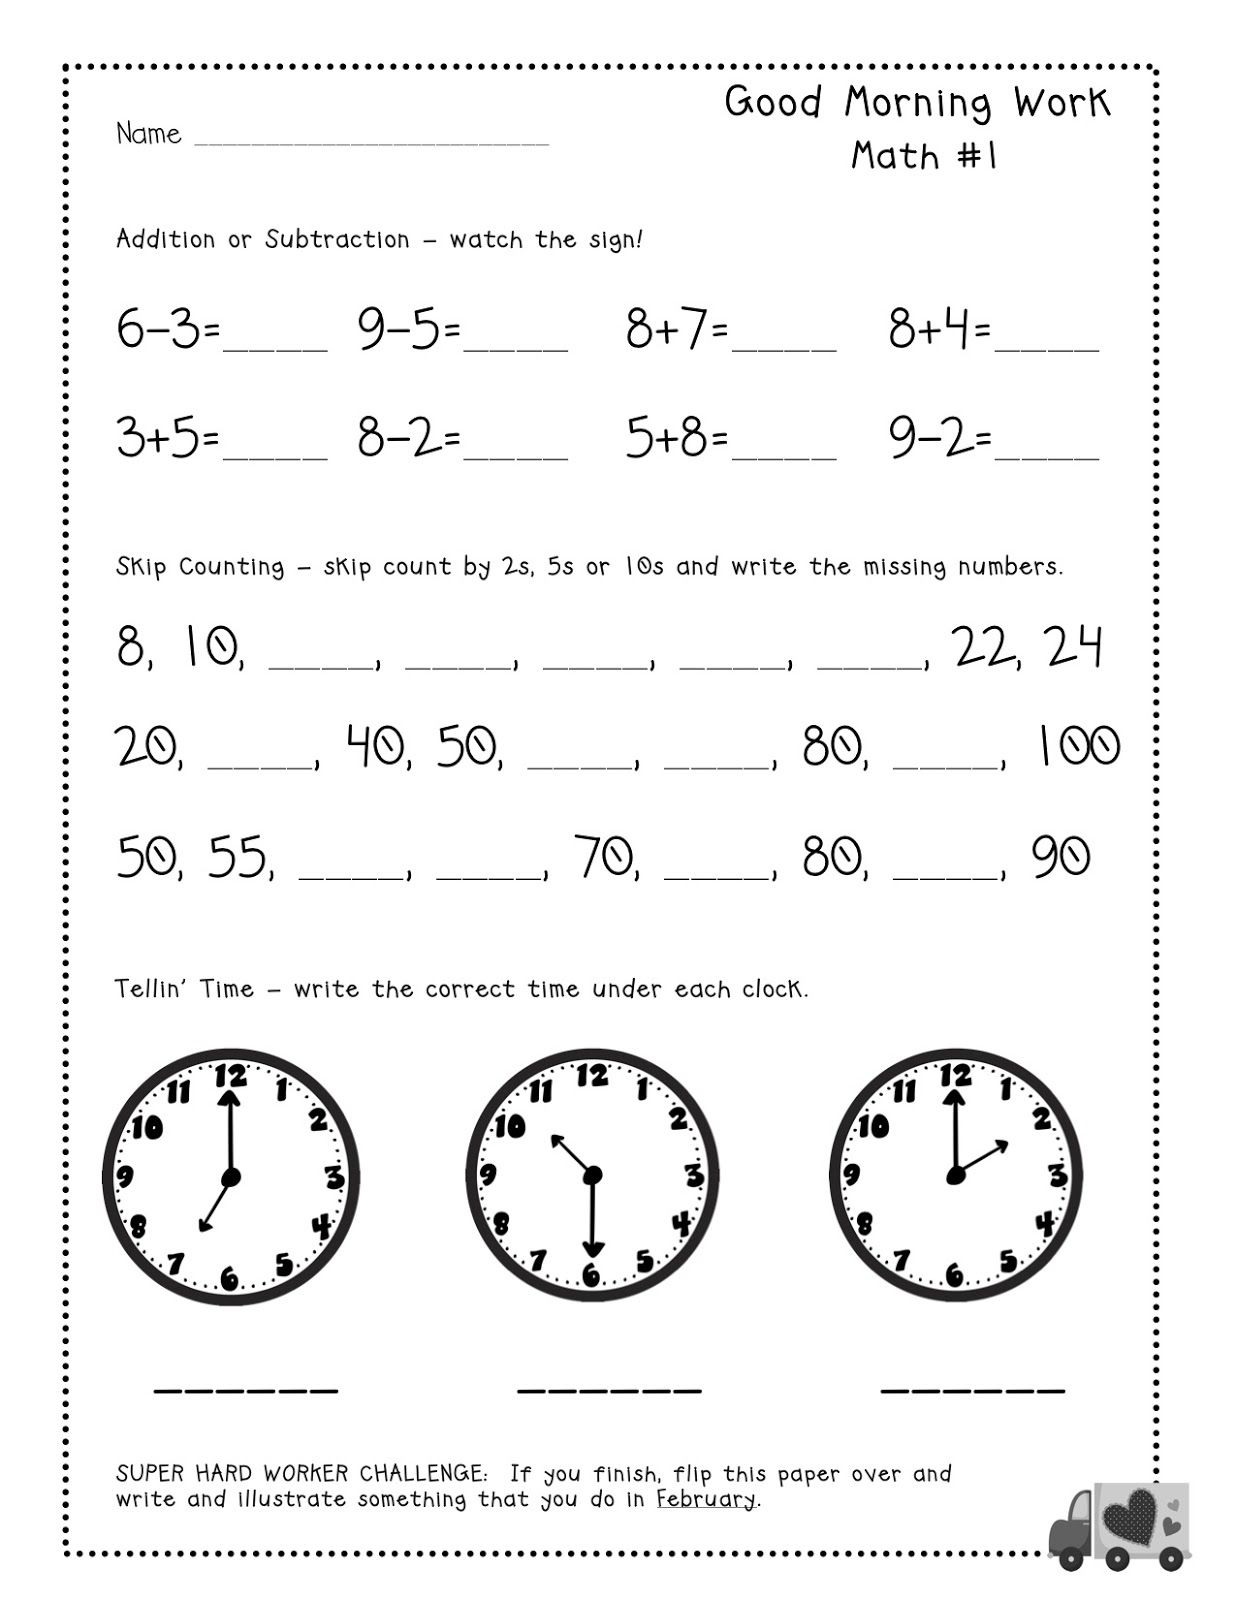 Worksheet Work For First Graders morning work worksheets precommunity printables 7 best images of free printable first grade 3rd worksheets